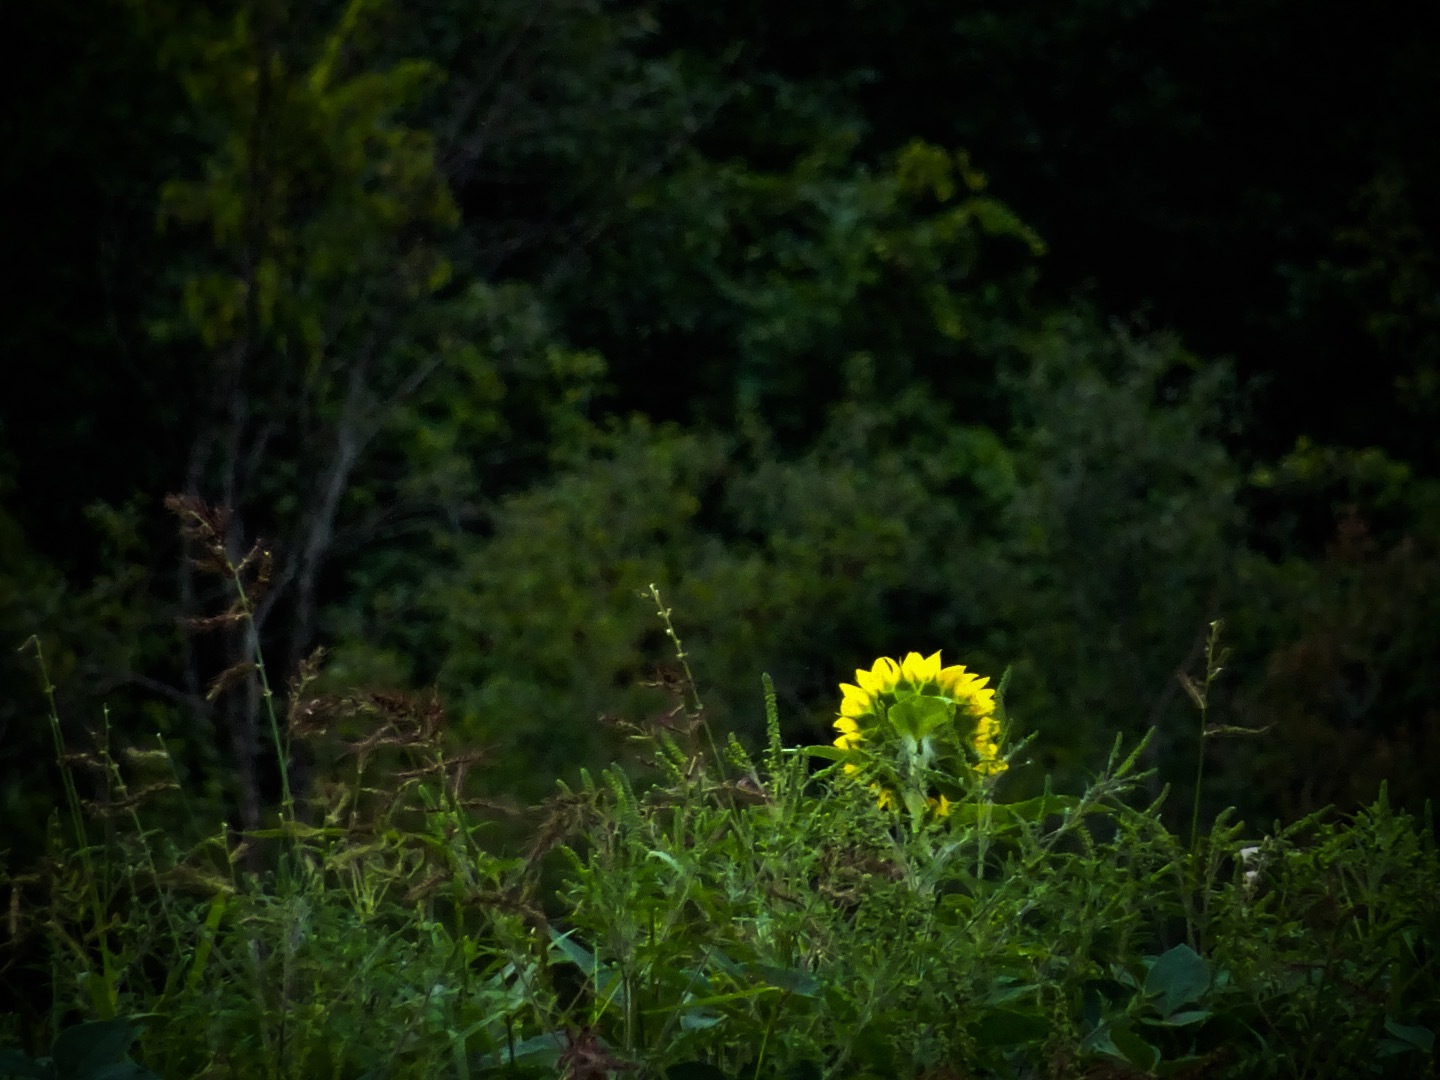 Lone Sunflower by Dorothy D